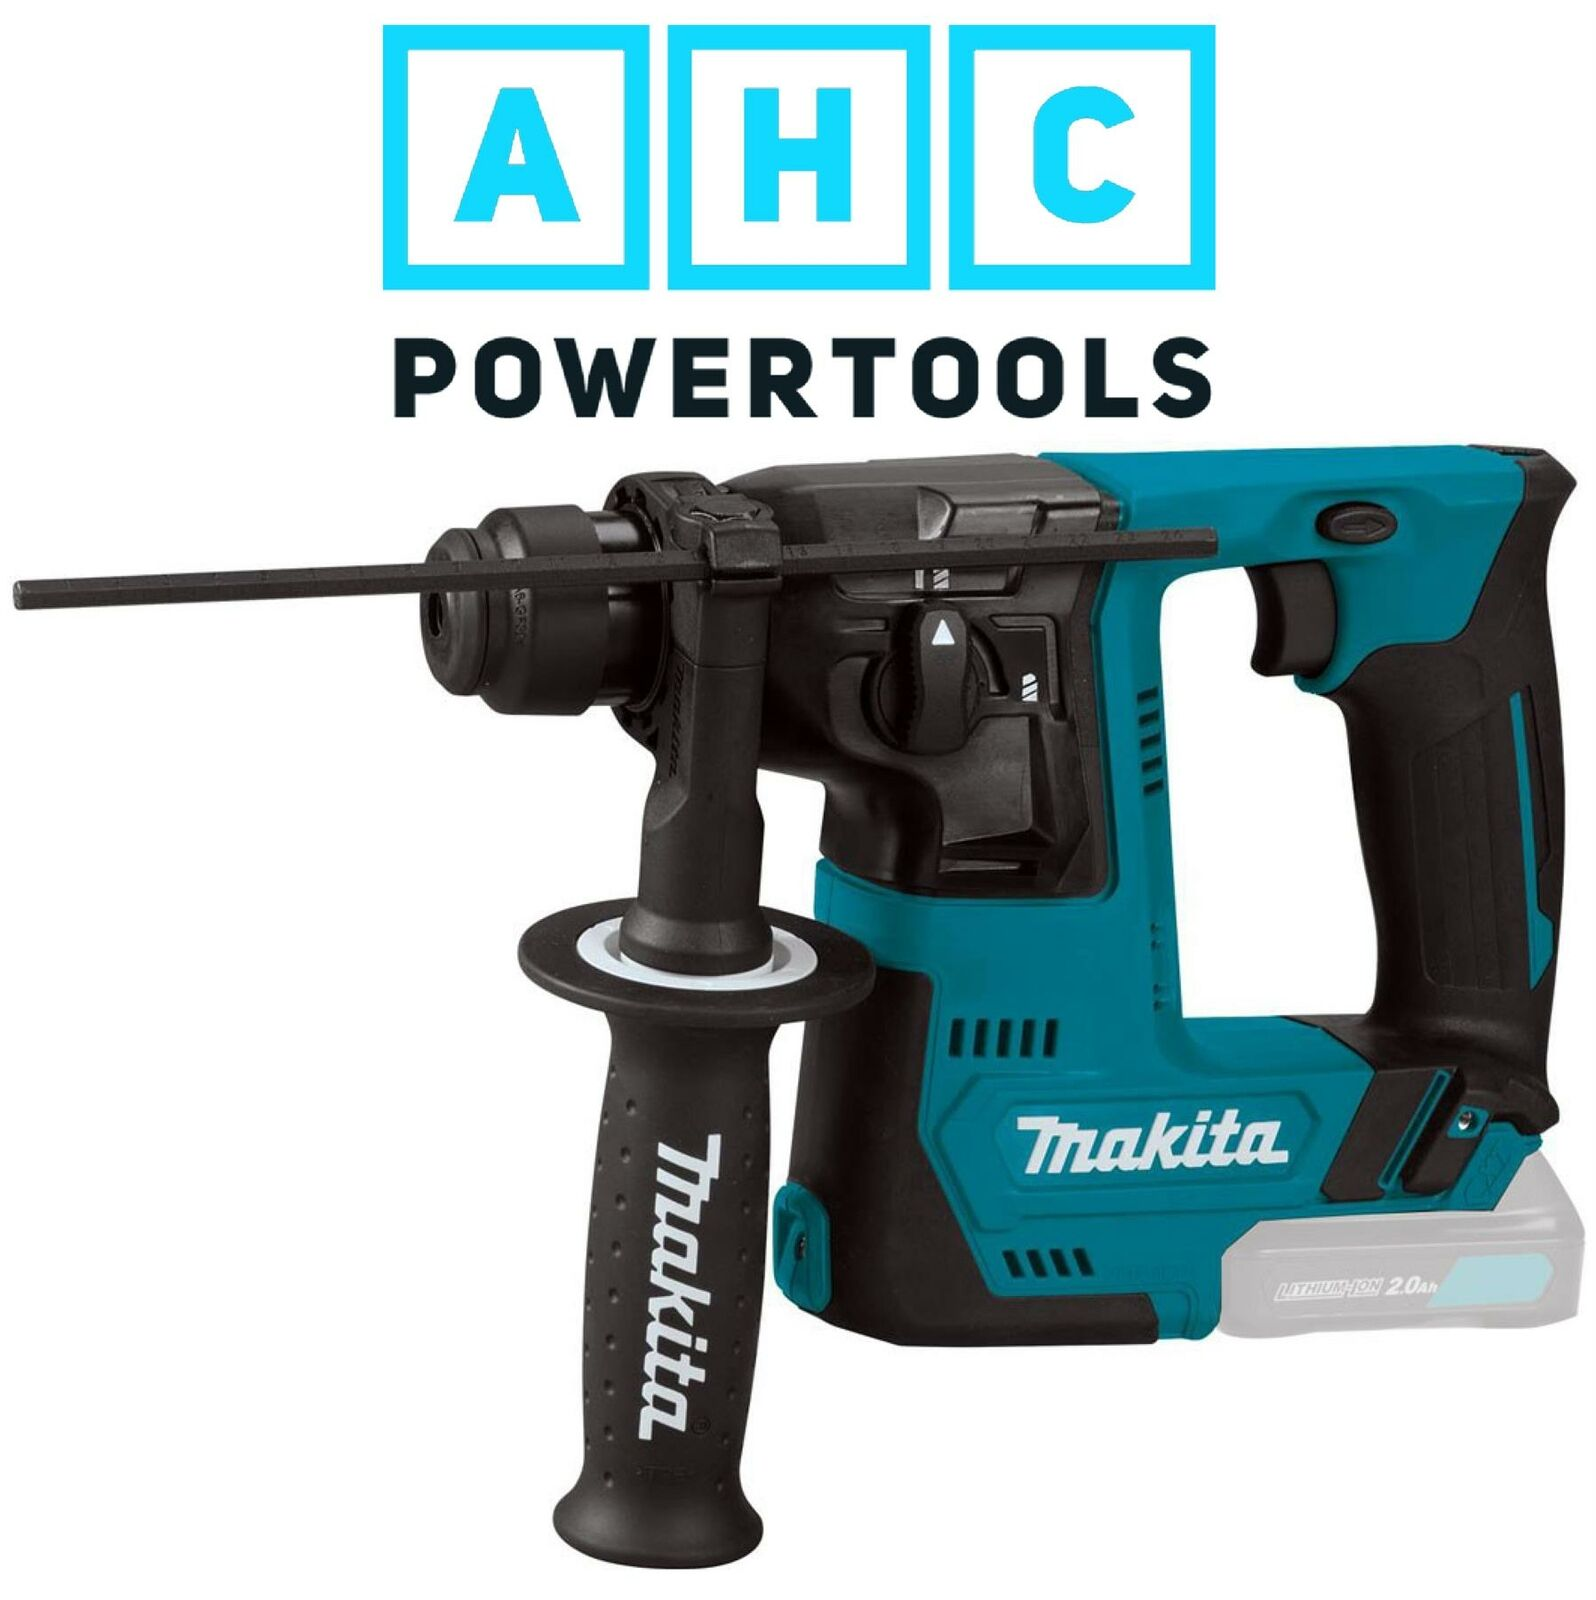 74% OFF Makita HR140DZ 12v 14mm CXT SDS Rotary Hammer Drill on ebay